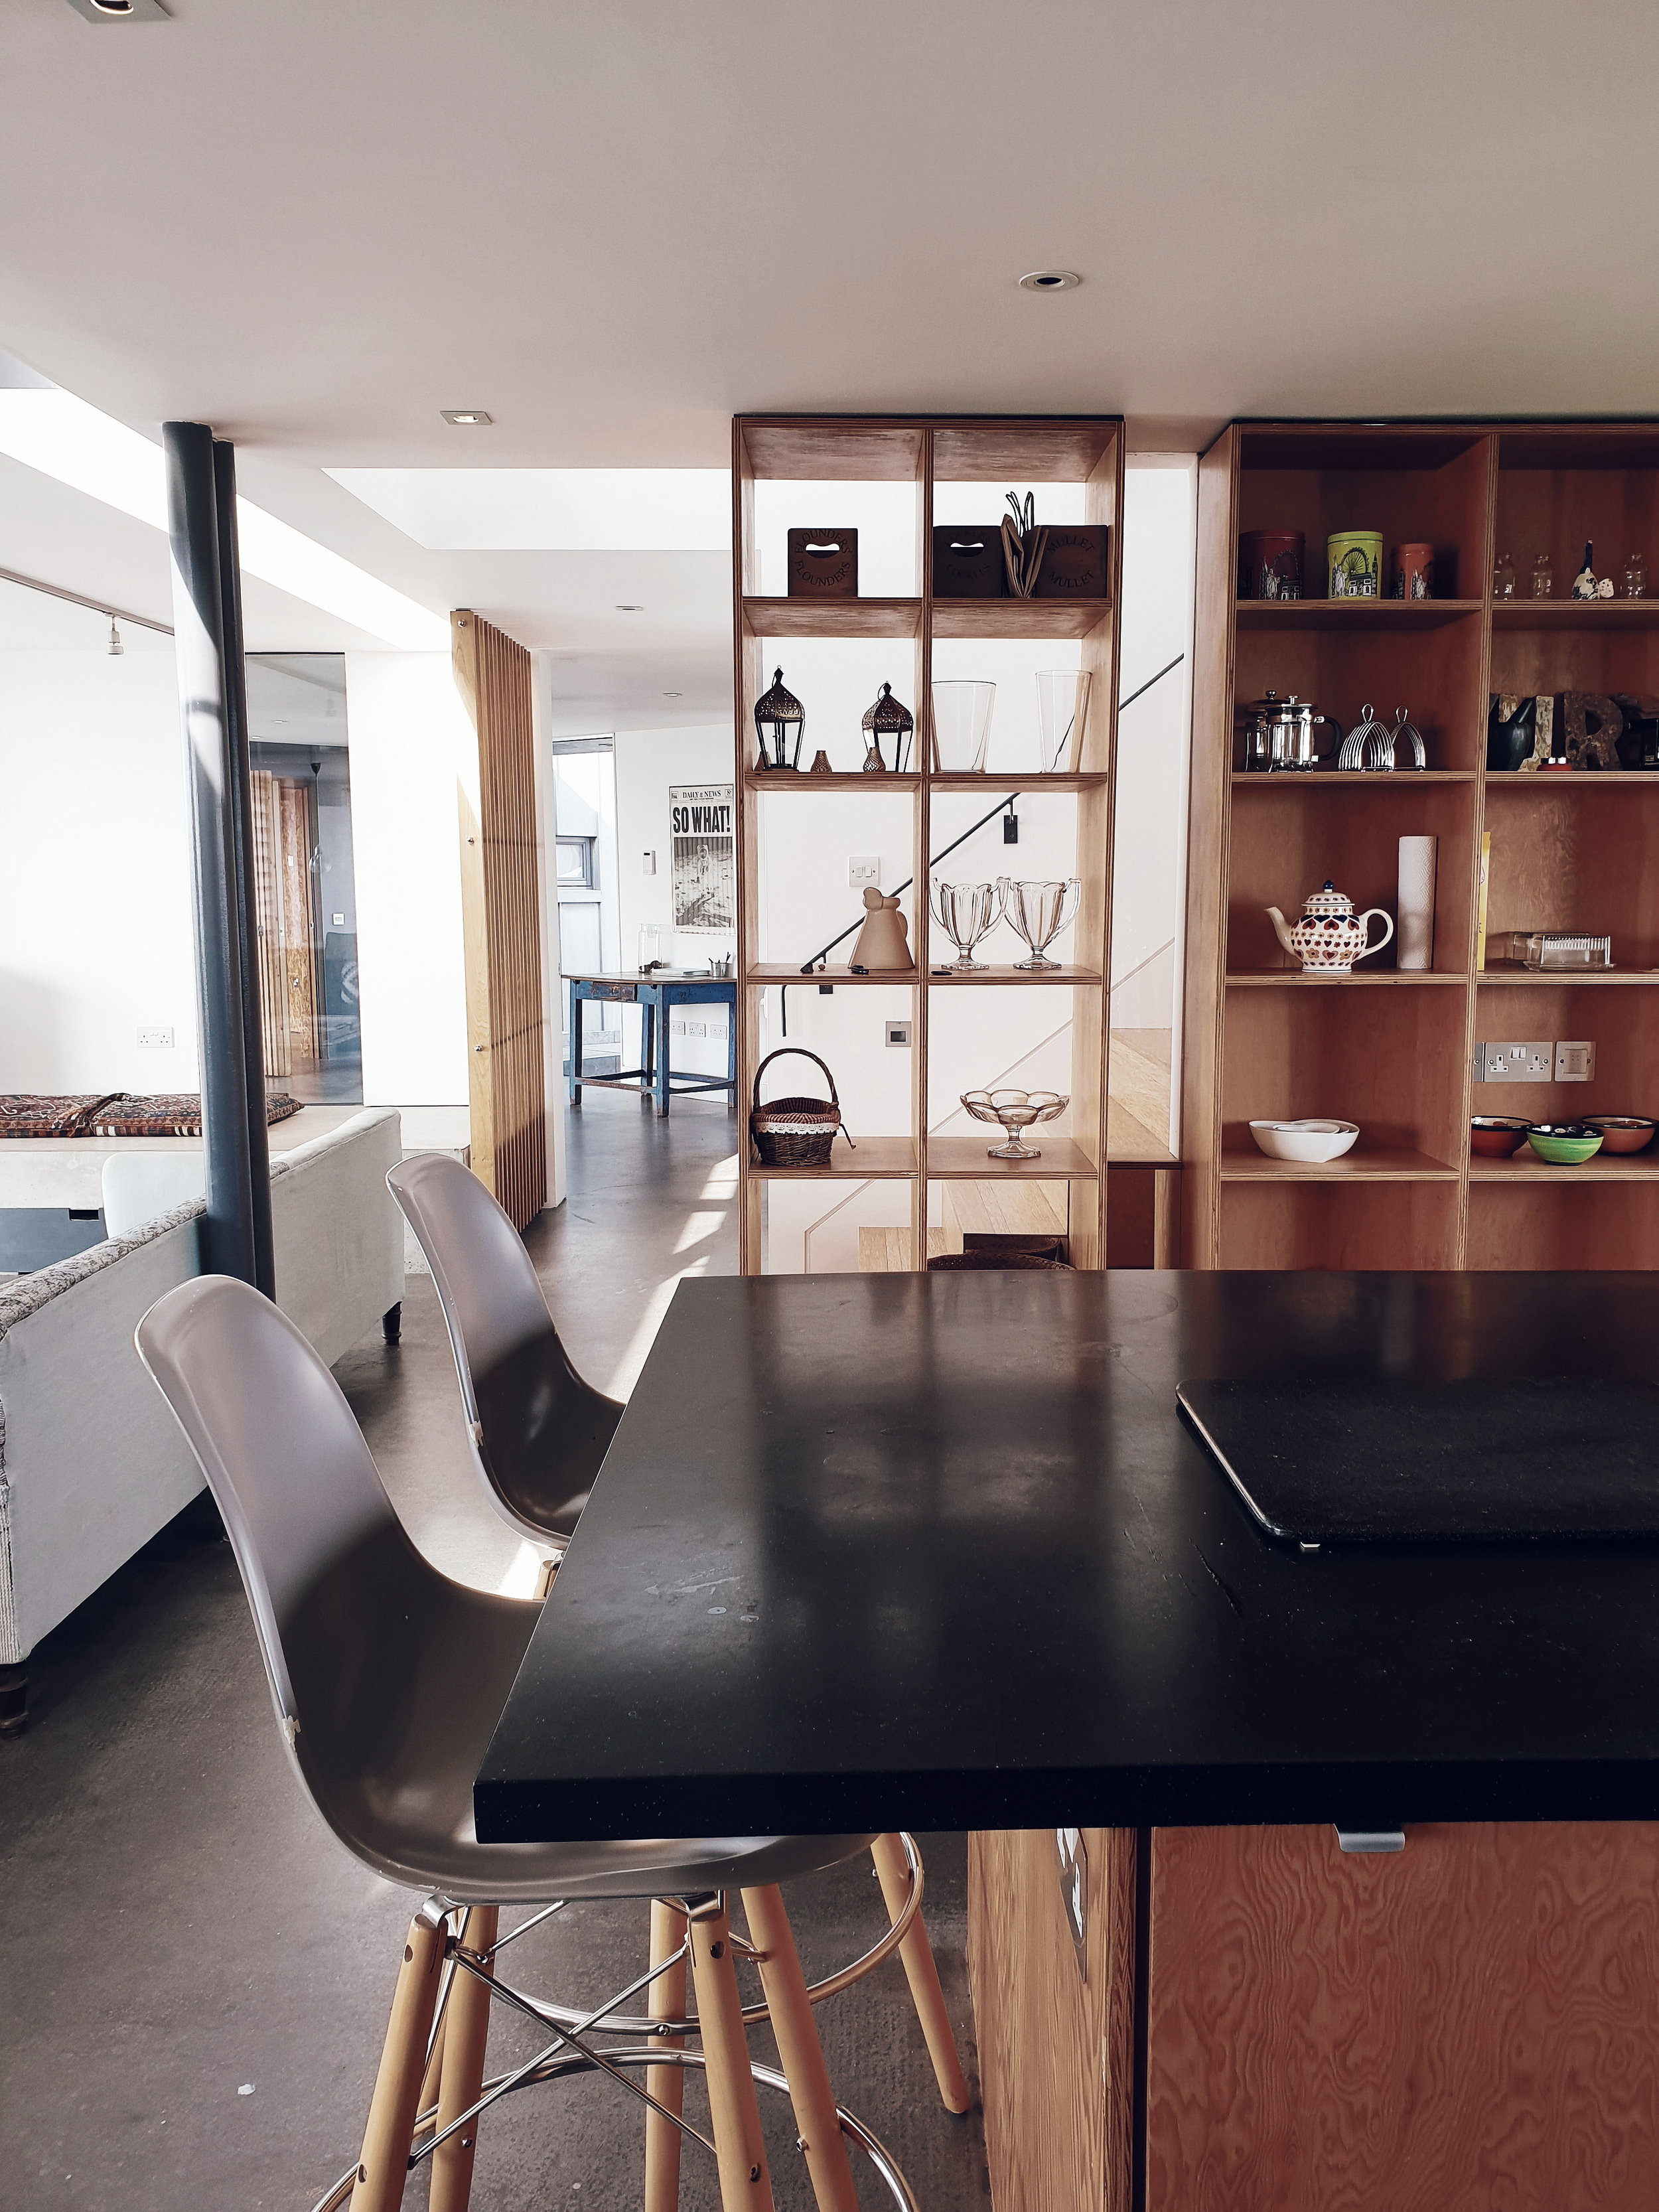 There is a huge island in the centre of the kitchen which makes it a really sociable space